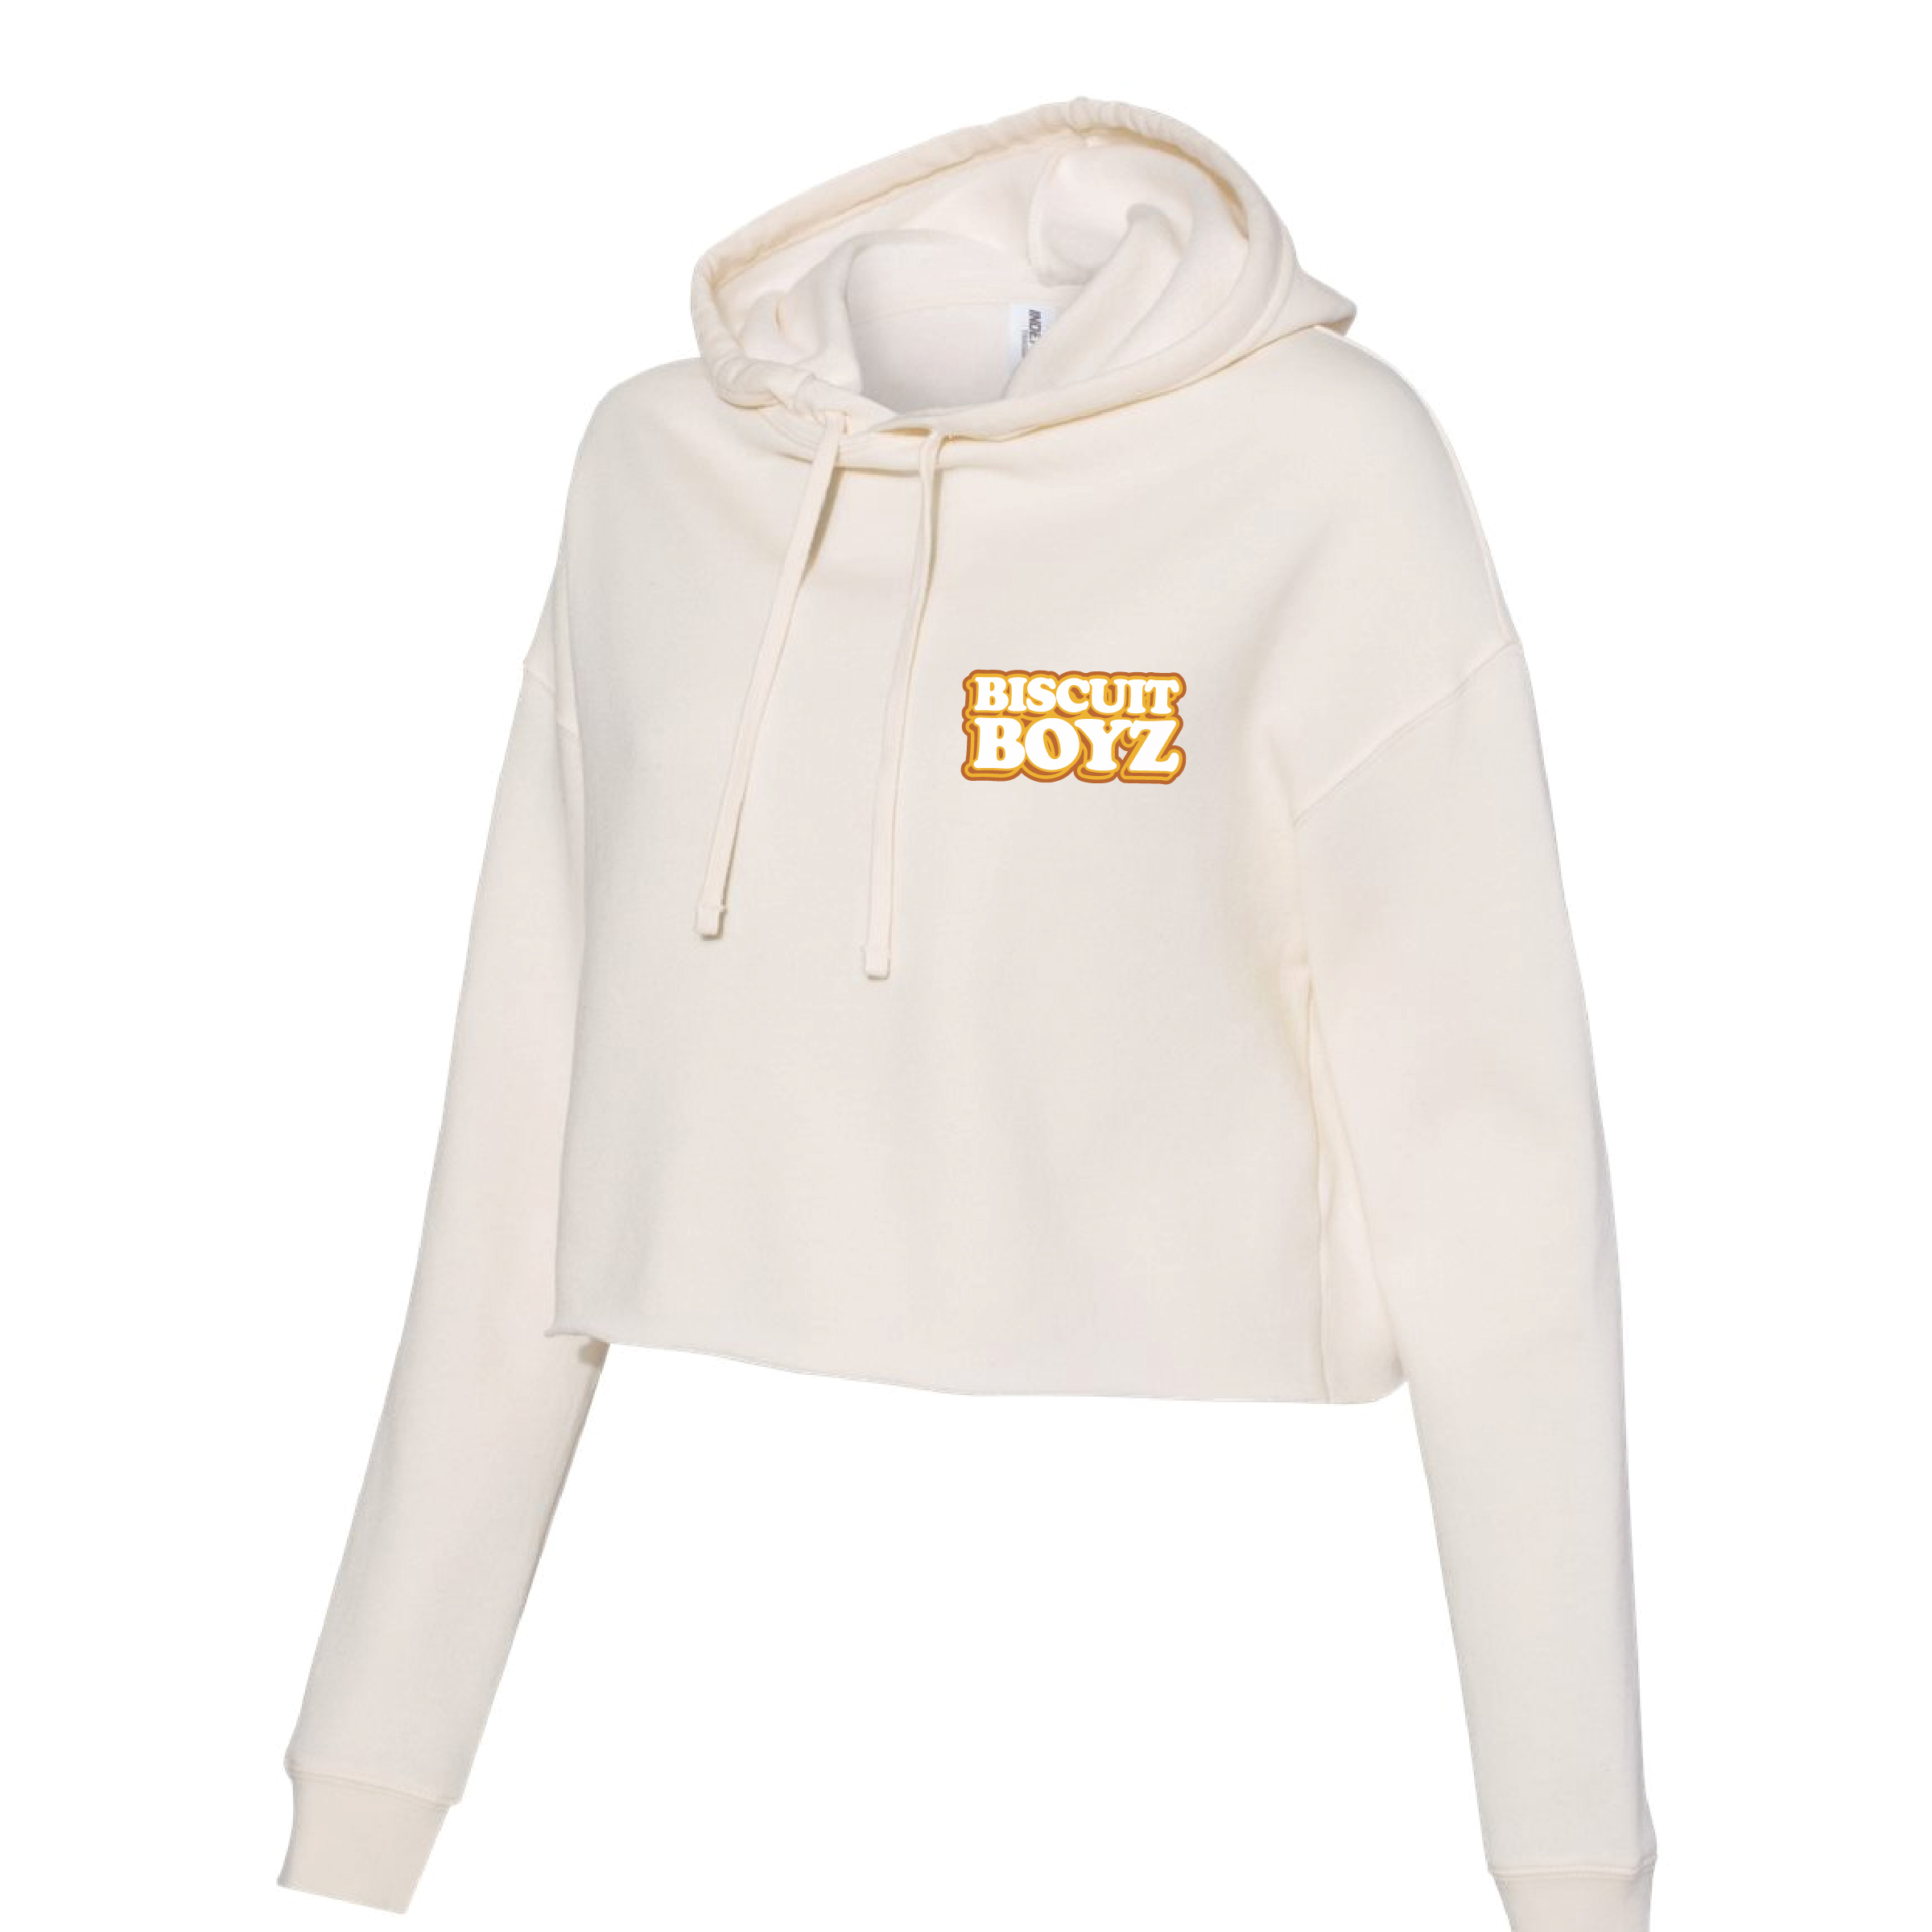 Biscuit Boyz Cropped Hoodie Square